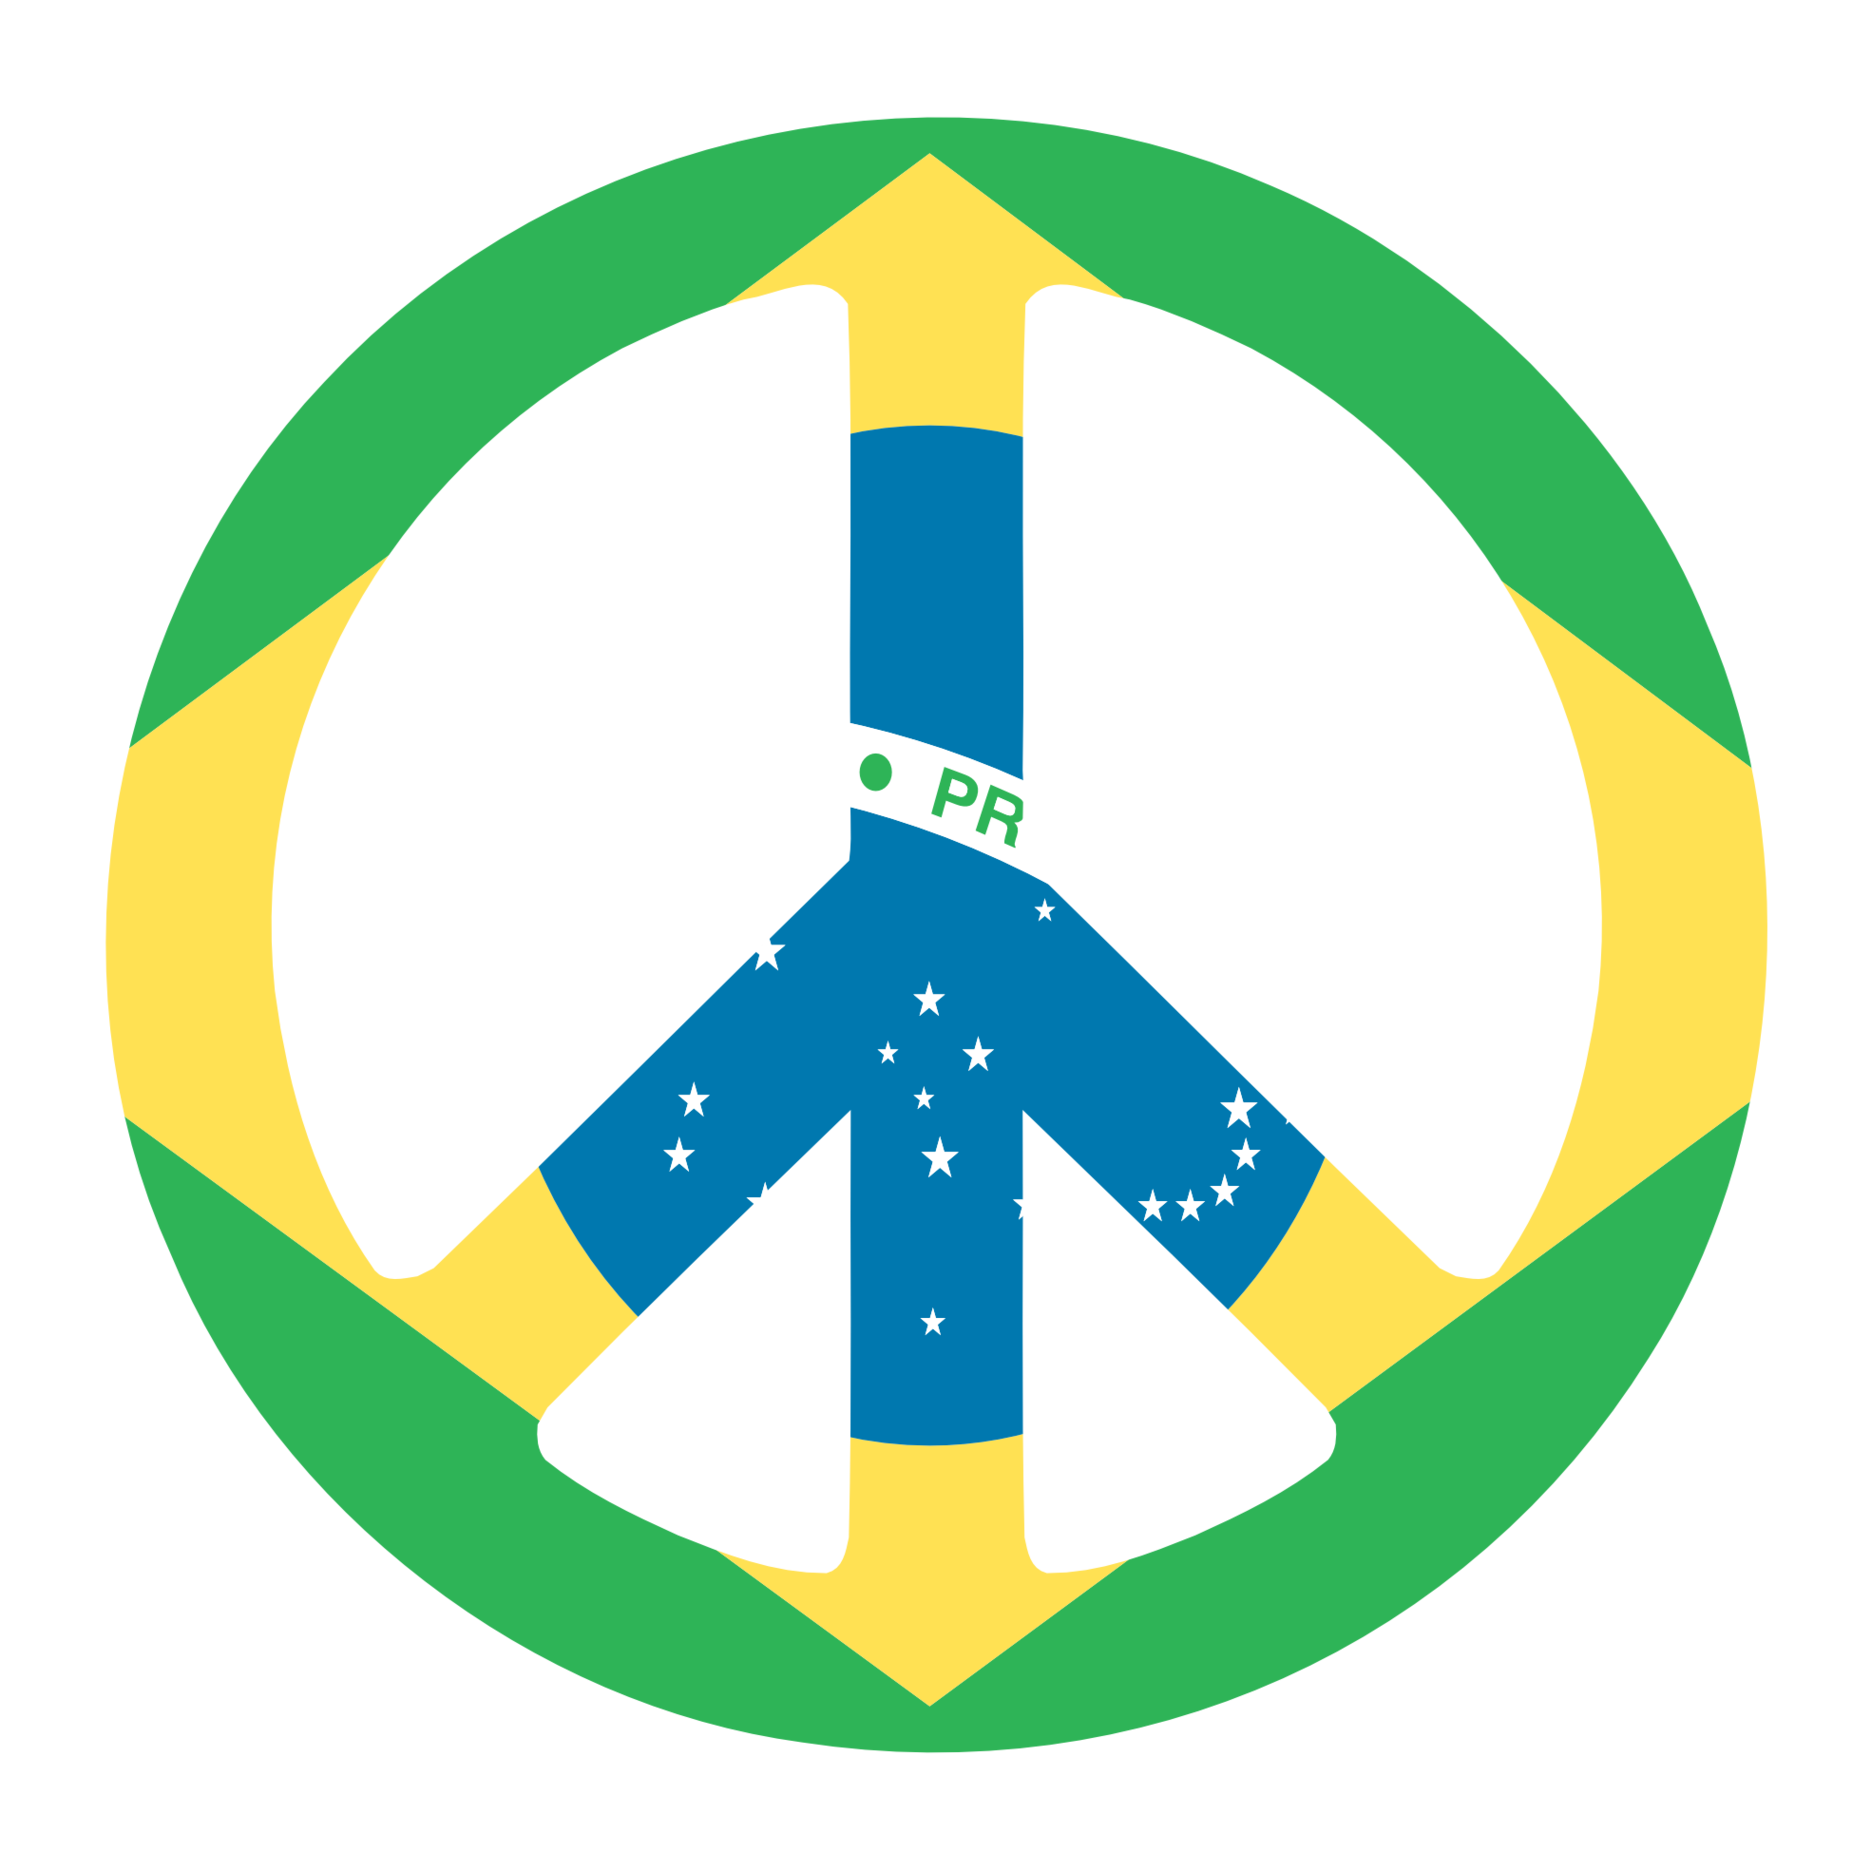 Peace signs clip art clipart free to use resource.